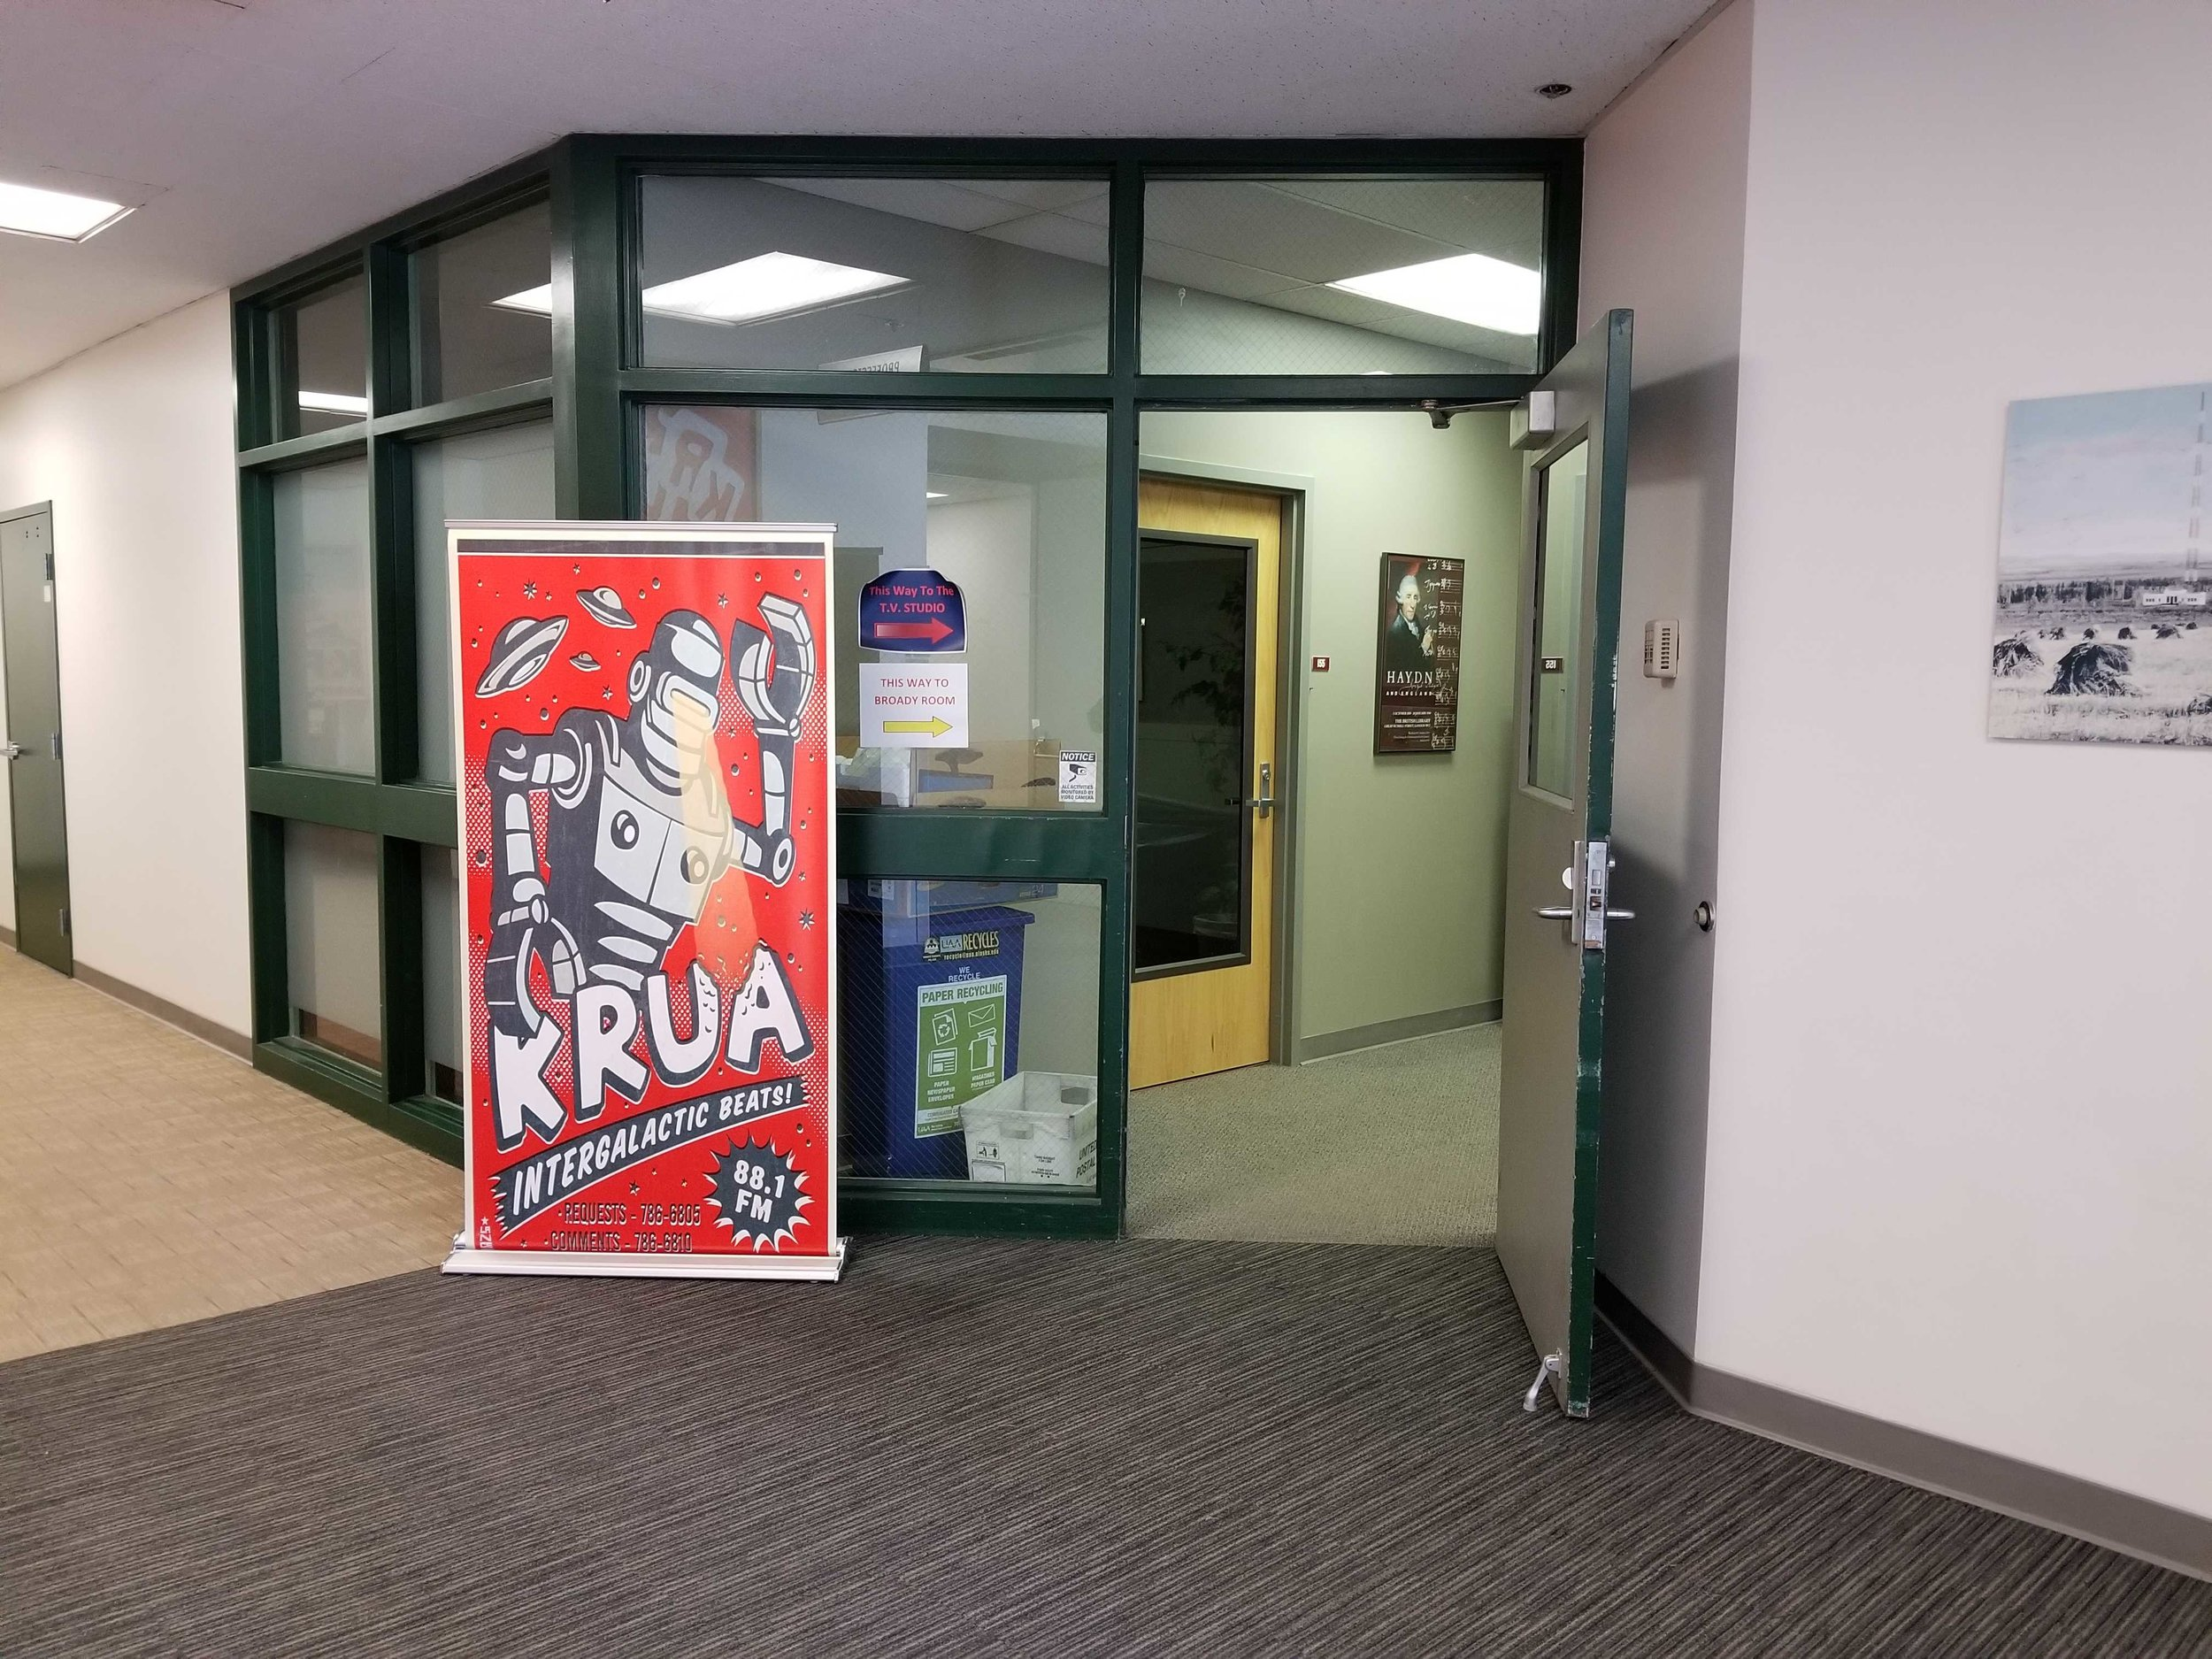 The entrance to our office in the Professional Studies Building.